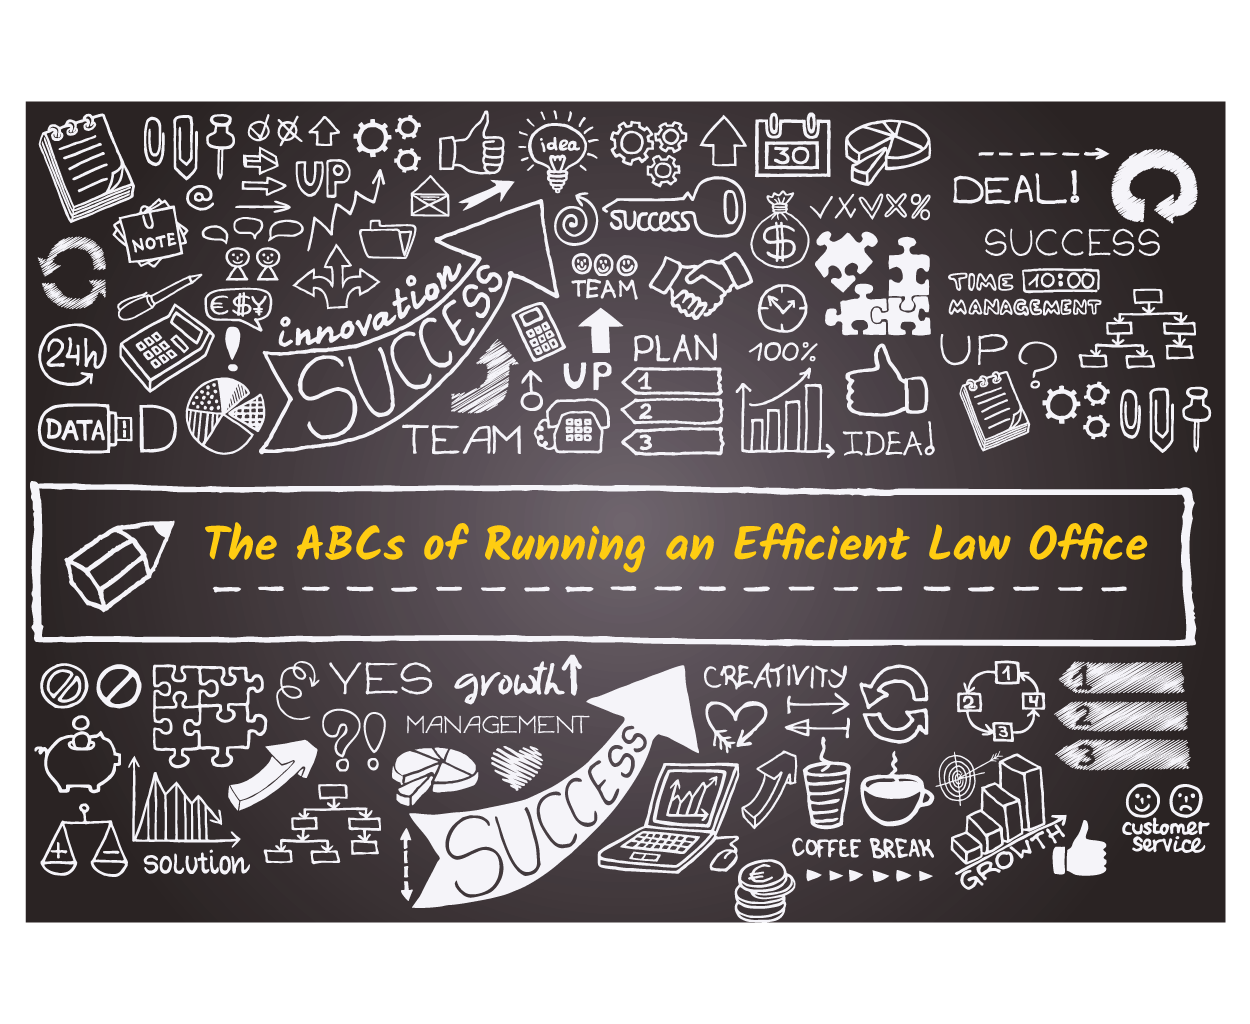 The-ABCs-of-Running-an-Efficient-Law-Office